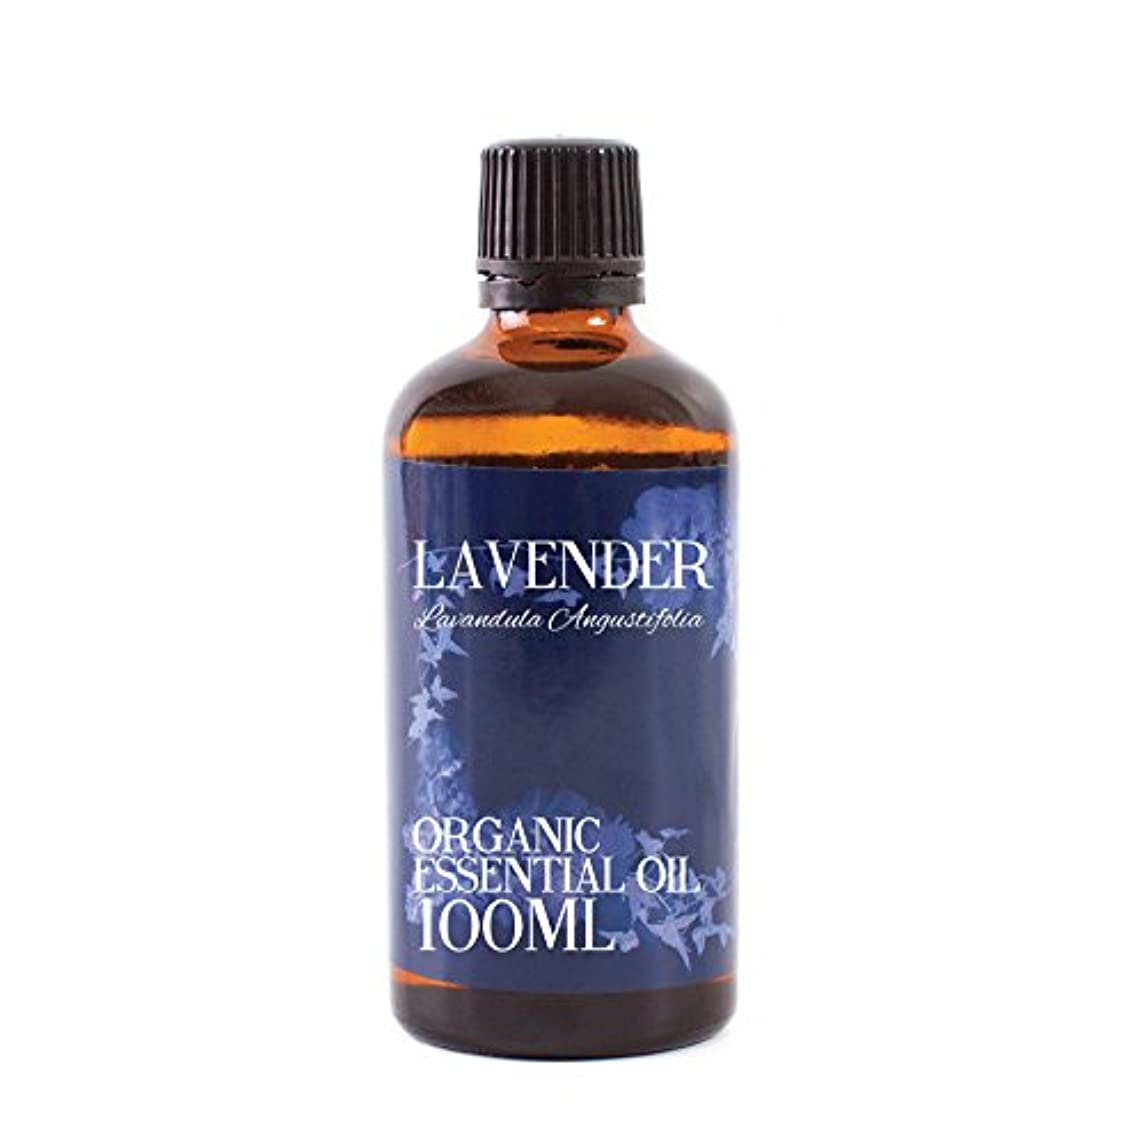 激しいマーチャンダイジングランプMystic Moments | Lavender Organic Essential Oil - 100ml - 100% Pure